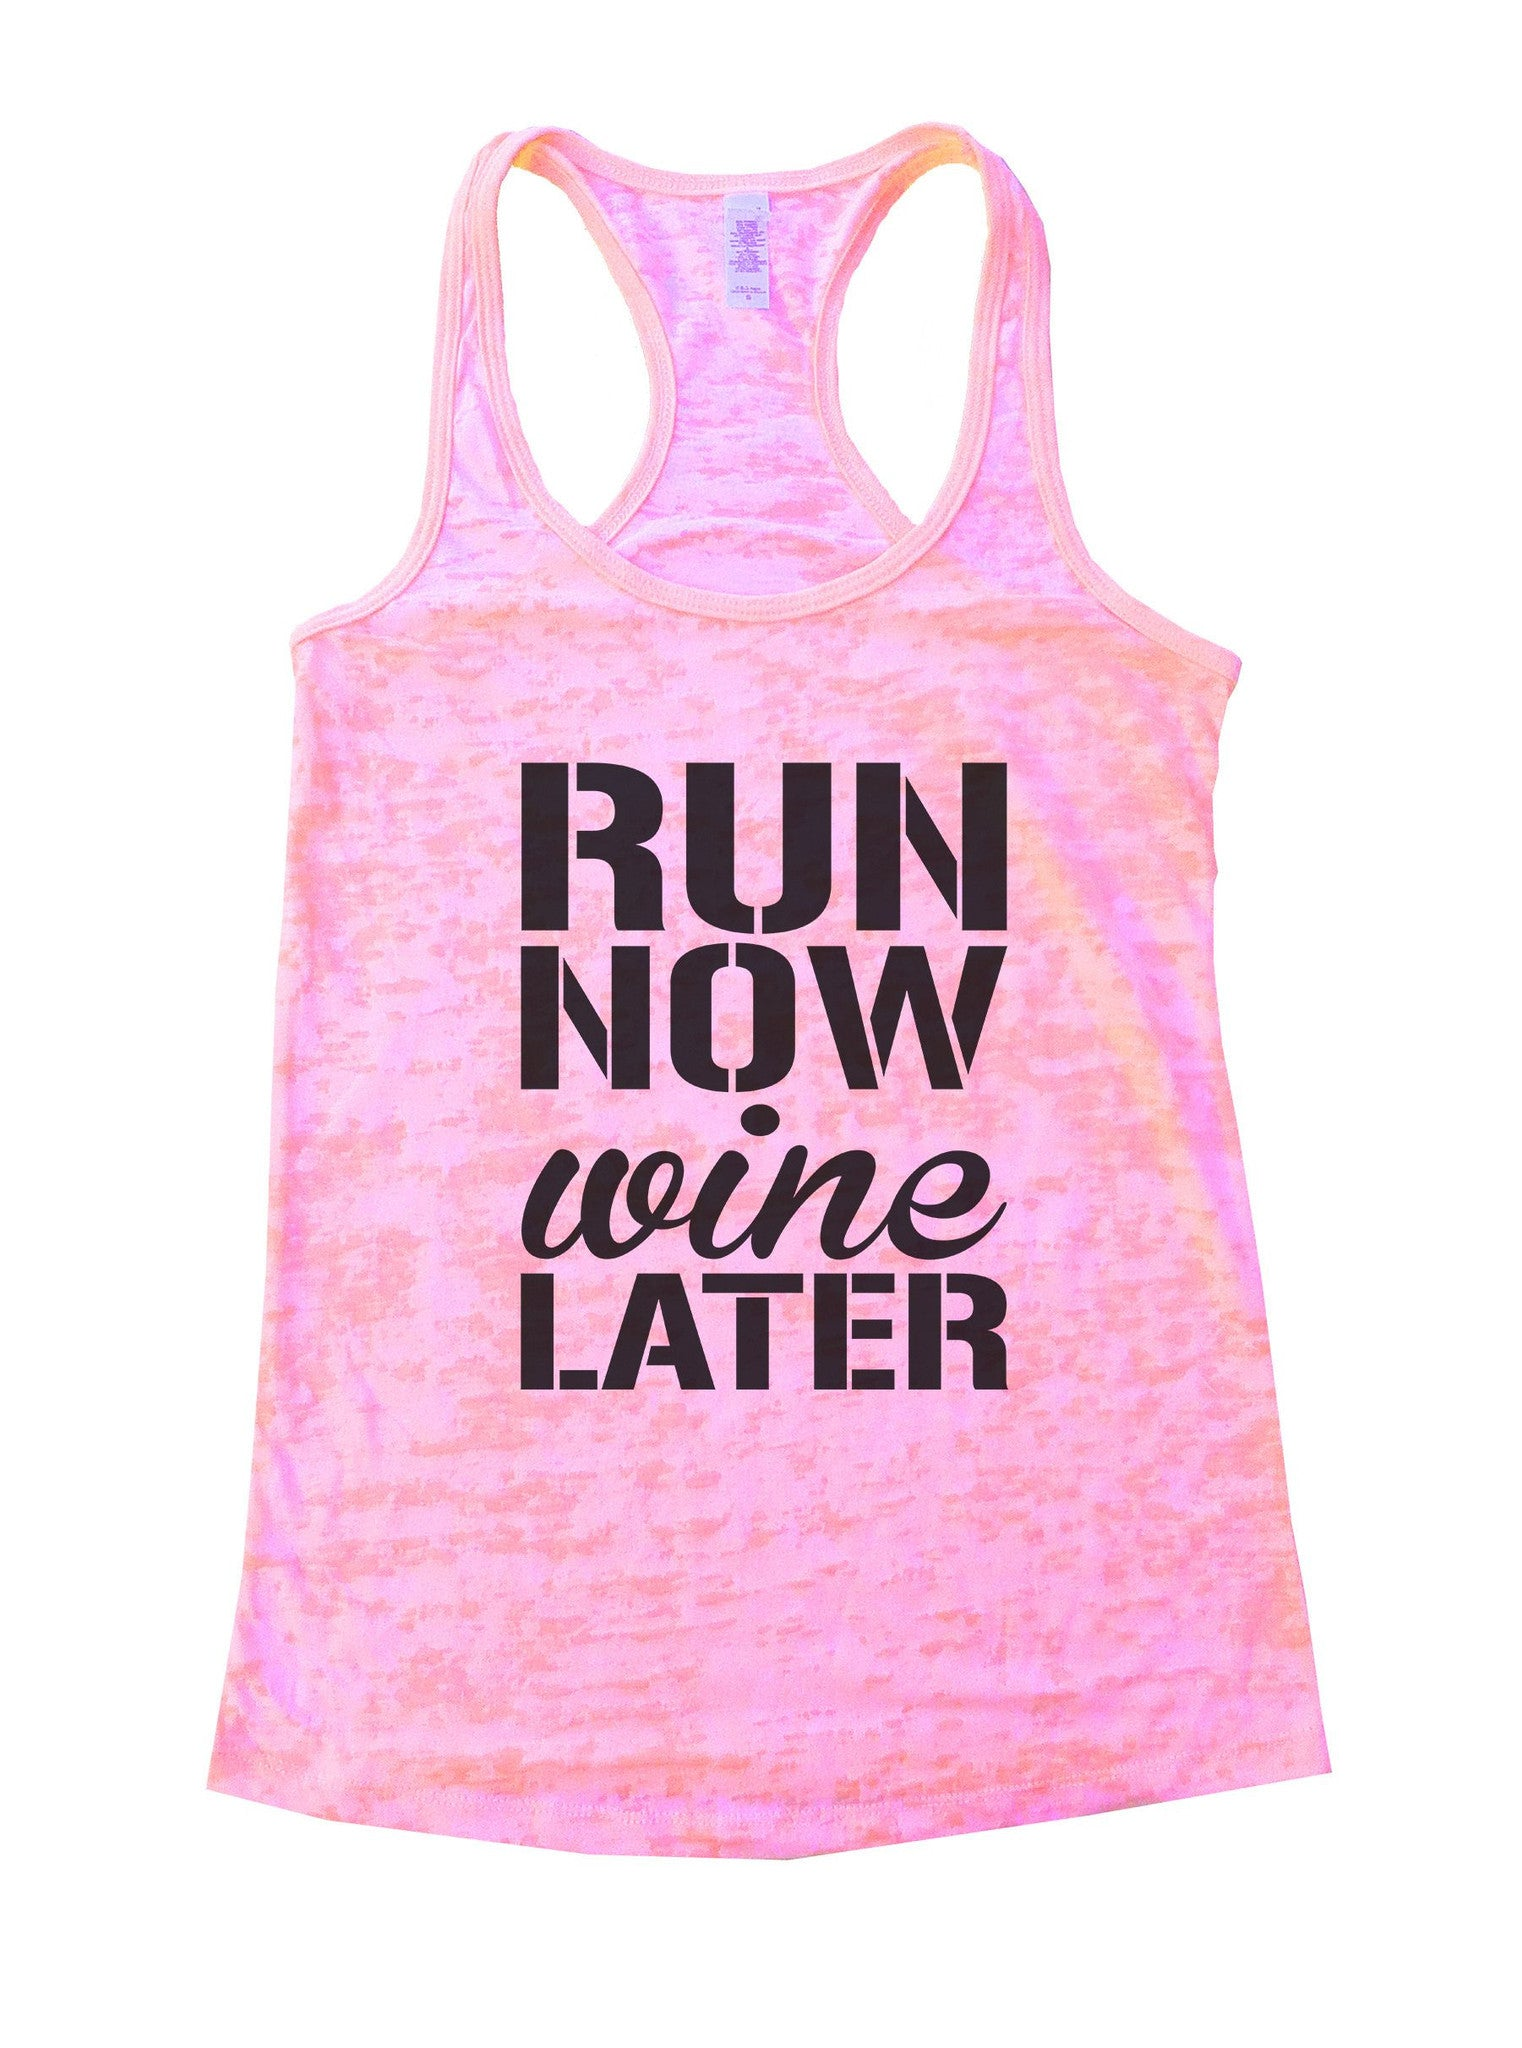 Run Now Wine Later Burnout Tank Top By BurnoutTankTops.com - 951 - Funny Shirts Tank Tops Burnouts and Triblends  - 2